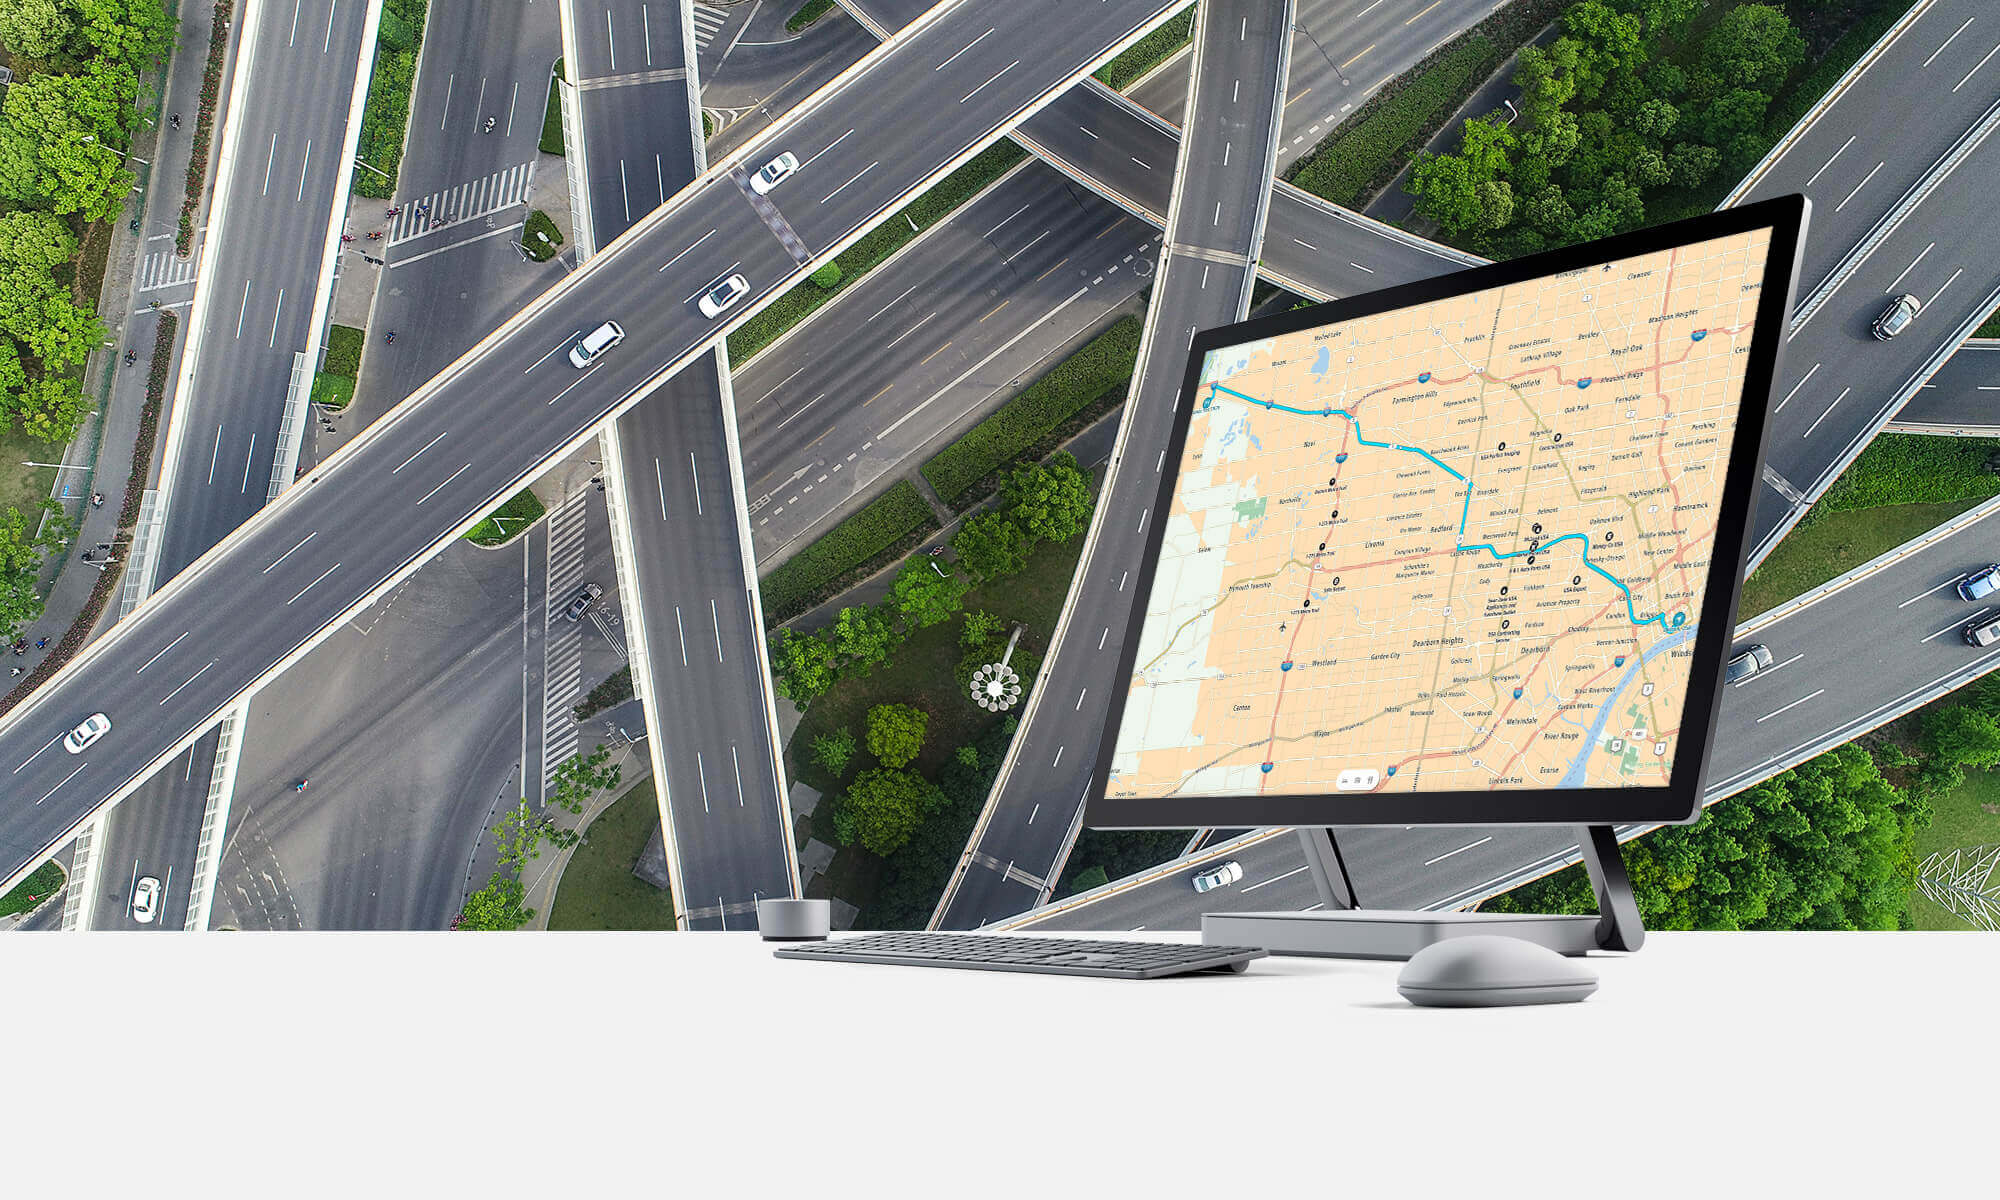 TomTom APIs and SDKs